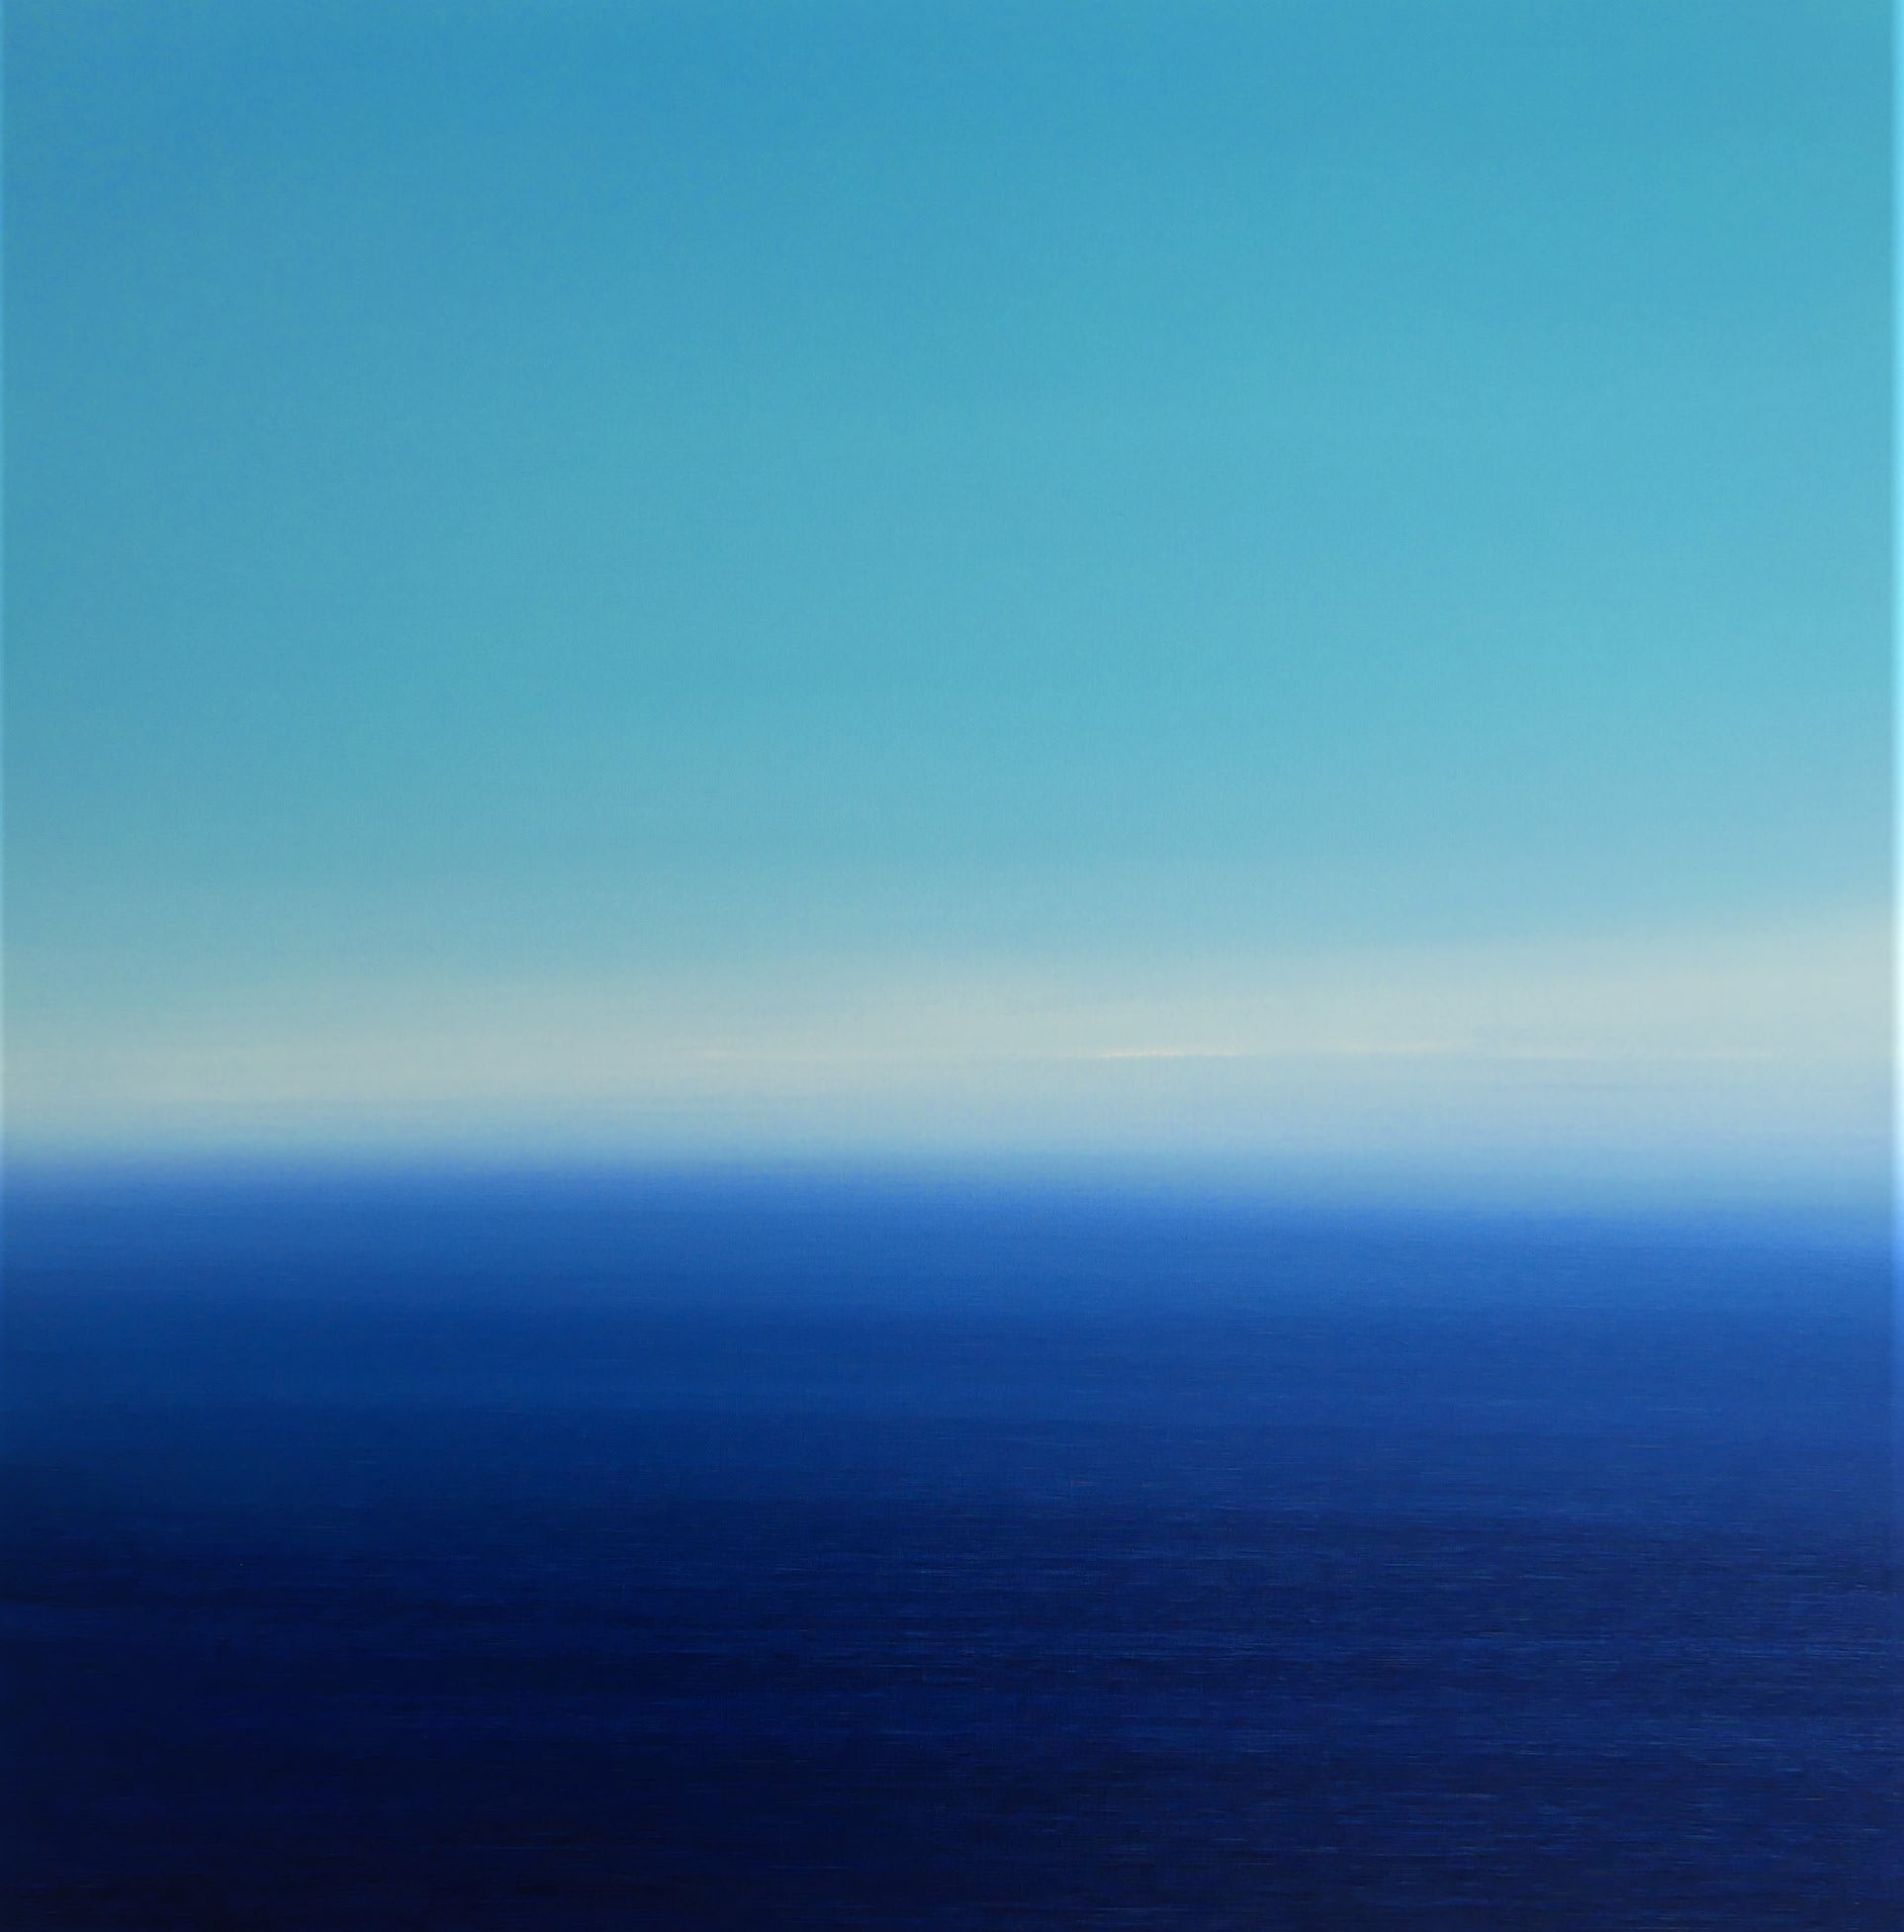 """<span class=""""link fancybox-details-link""""><a href=""""/artists/78-martyn-perryman/works/7913-martyn-perryman-endless-horizons-st-ives-bay-2021/"""">View Detail Page</a></span><div class=""""artist""""><strong>Martyn Perryman</strong></div> b. 1963 <div class=""""title""""><em>Endless Horizons St Ives Bay </em>, 2021</div> <div class=""""medium"""">oil on canvas<br /> framed</div> <div class=""""dimensions"""">canvas size: h. 80 x w. 80 cm <br /> <br /> </div><div class=""""copyright_line"""">Ownart: £120 x 10 Months, 0% APR</div>"""